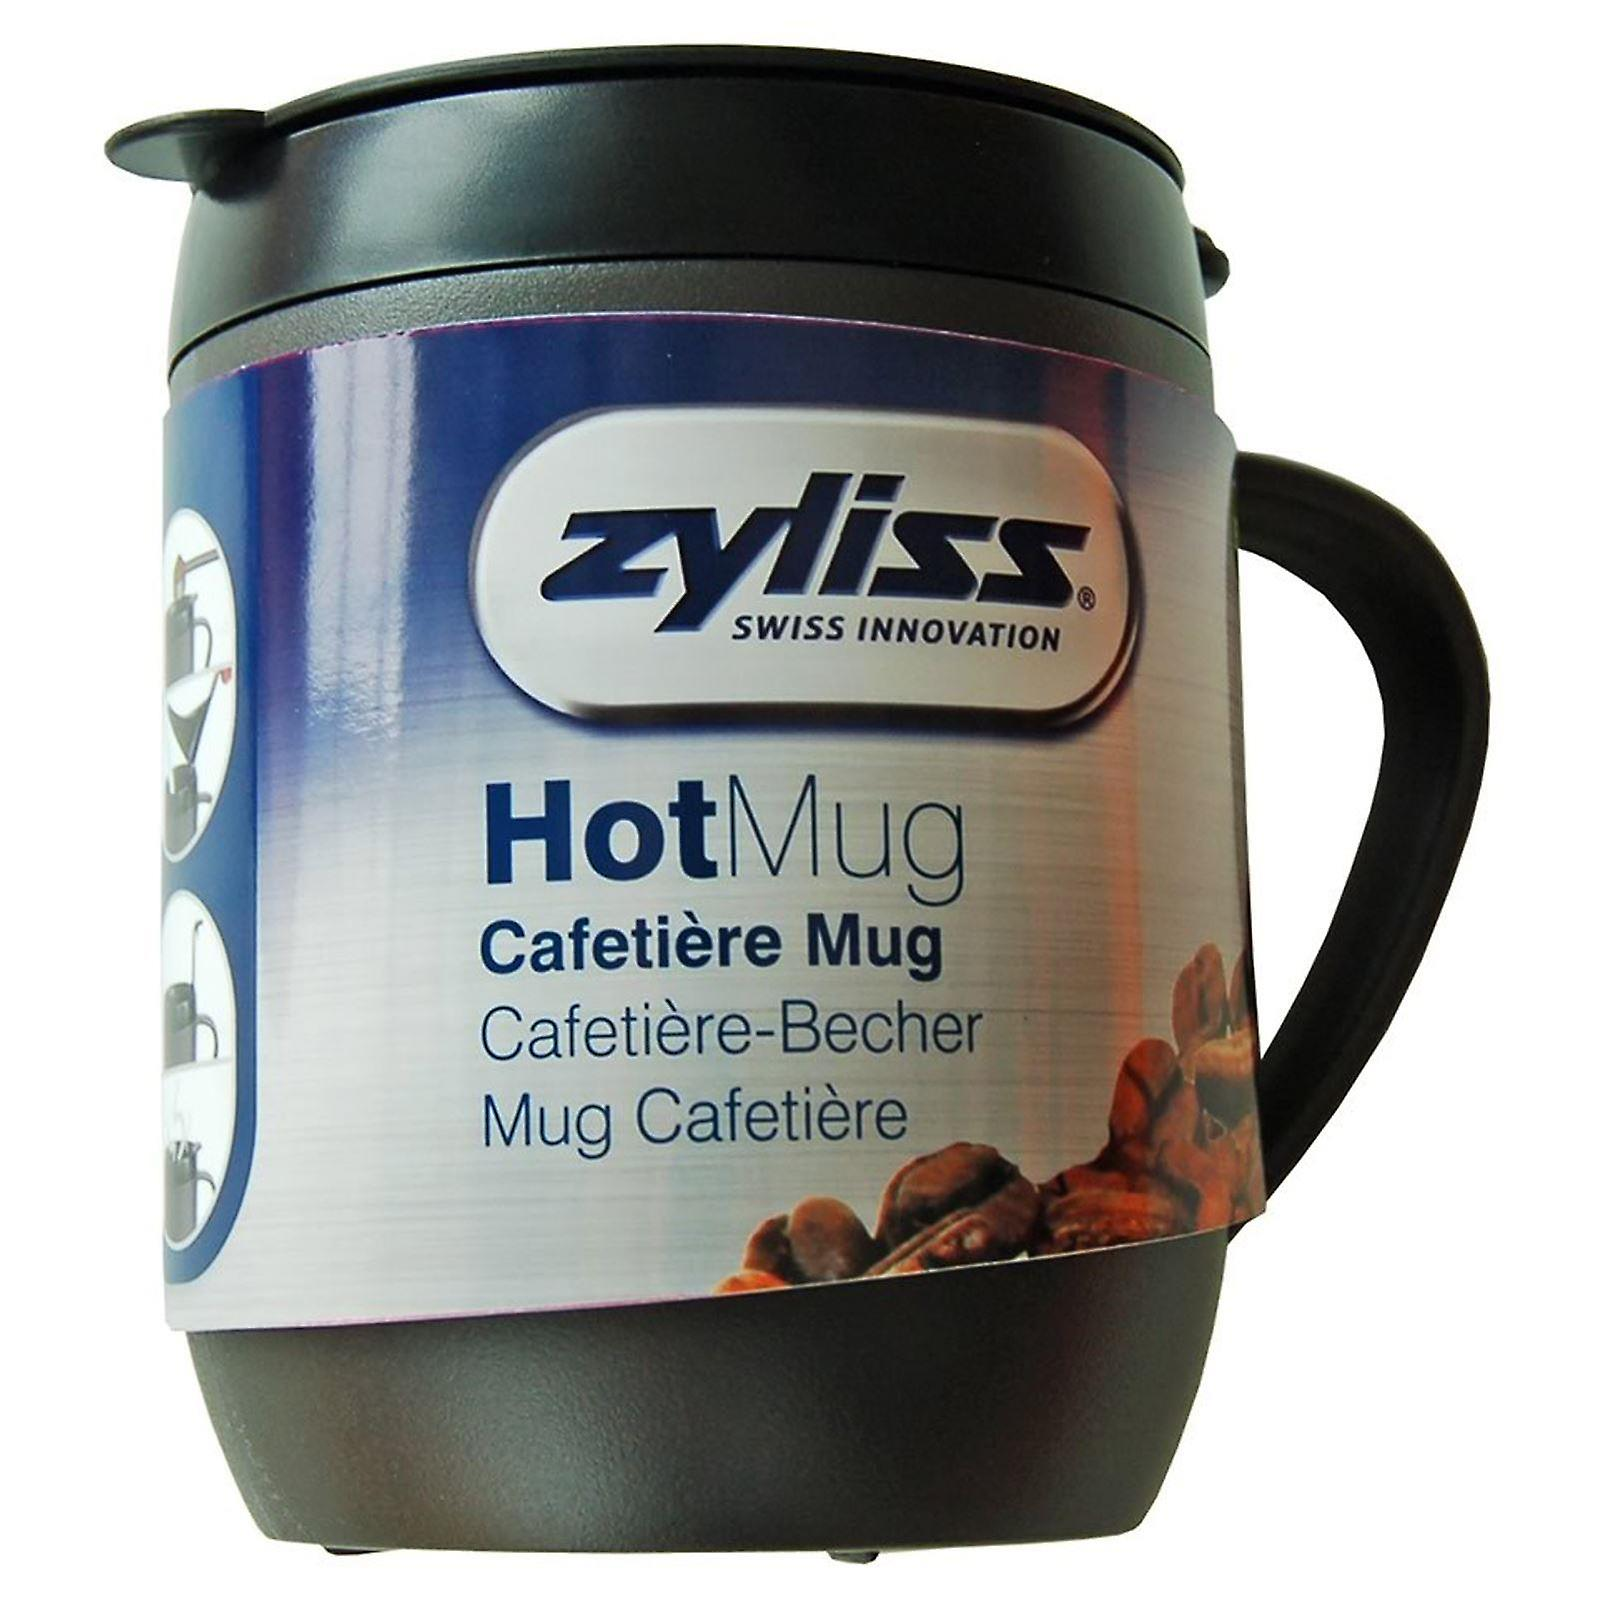 Zyliss Cafetiere Hot Mug - Grey + Red + Blue